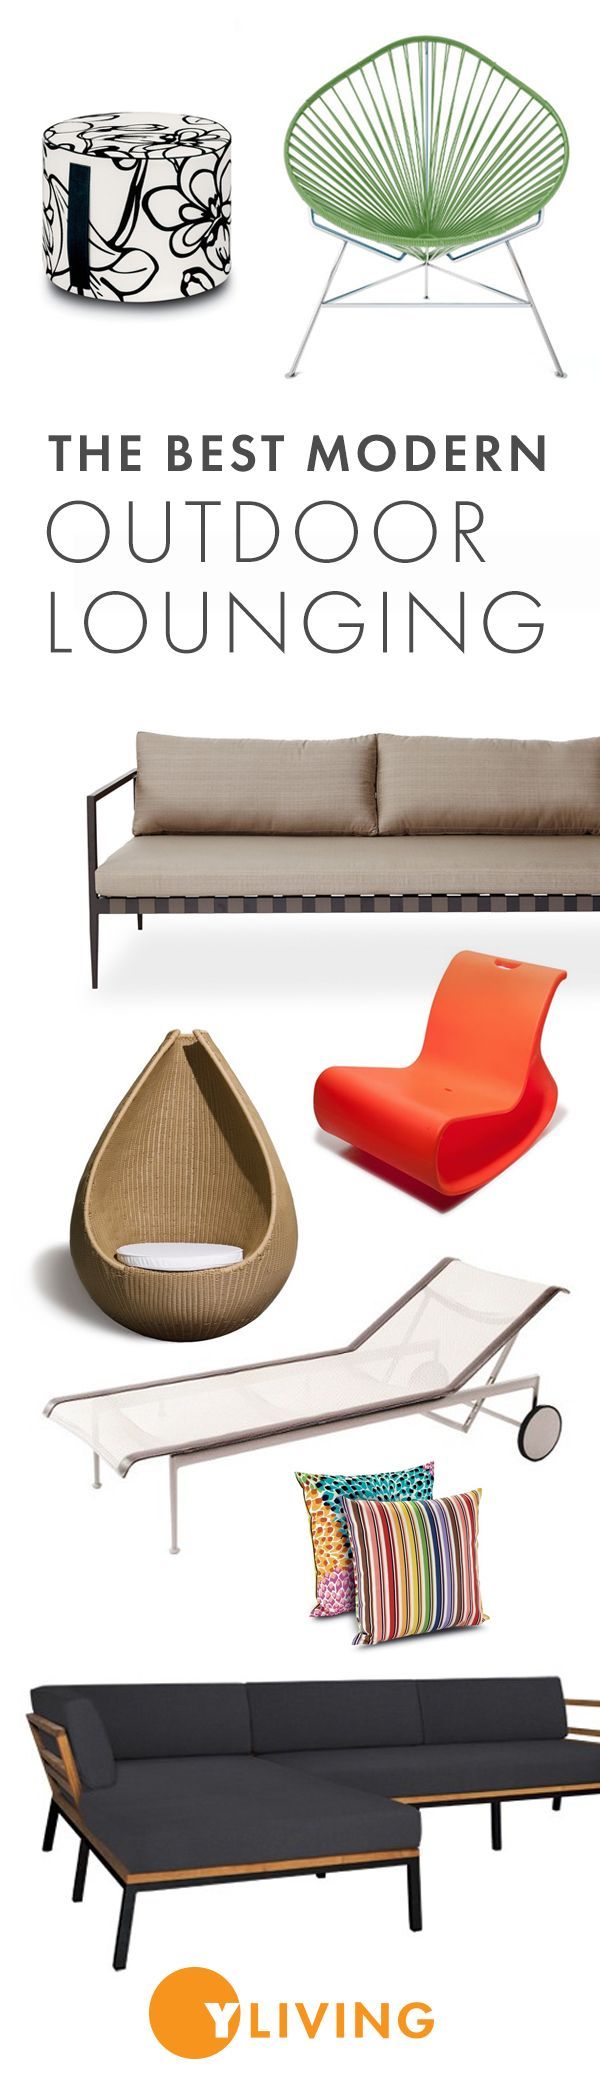 Shop the best in modern Outdoor Lounge Furniture at YLiving.com Save on thousands of top designs today!